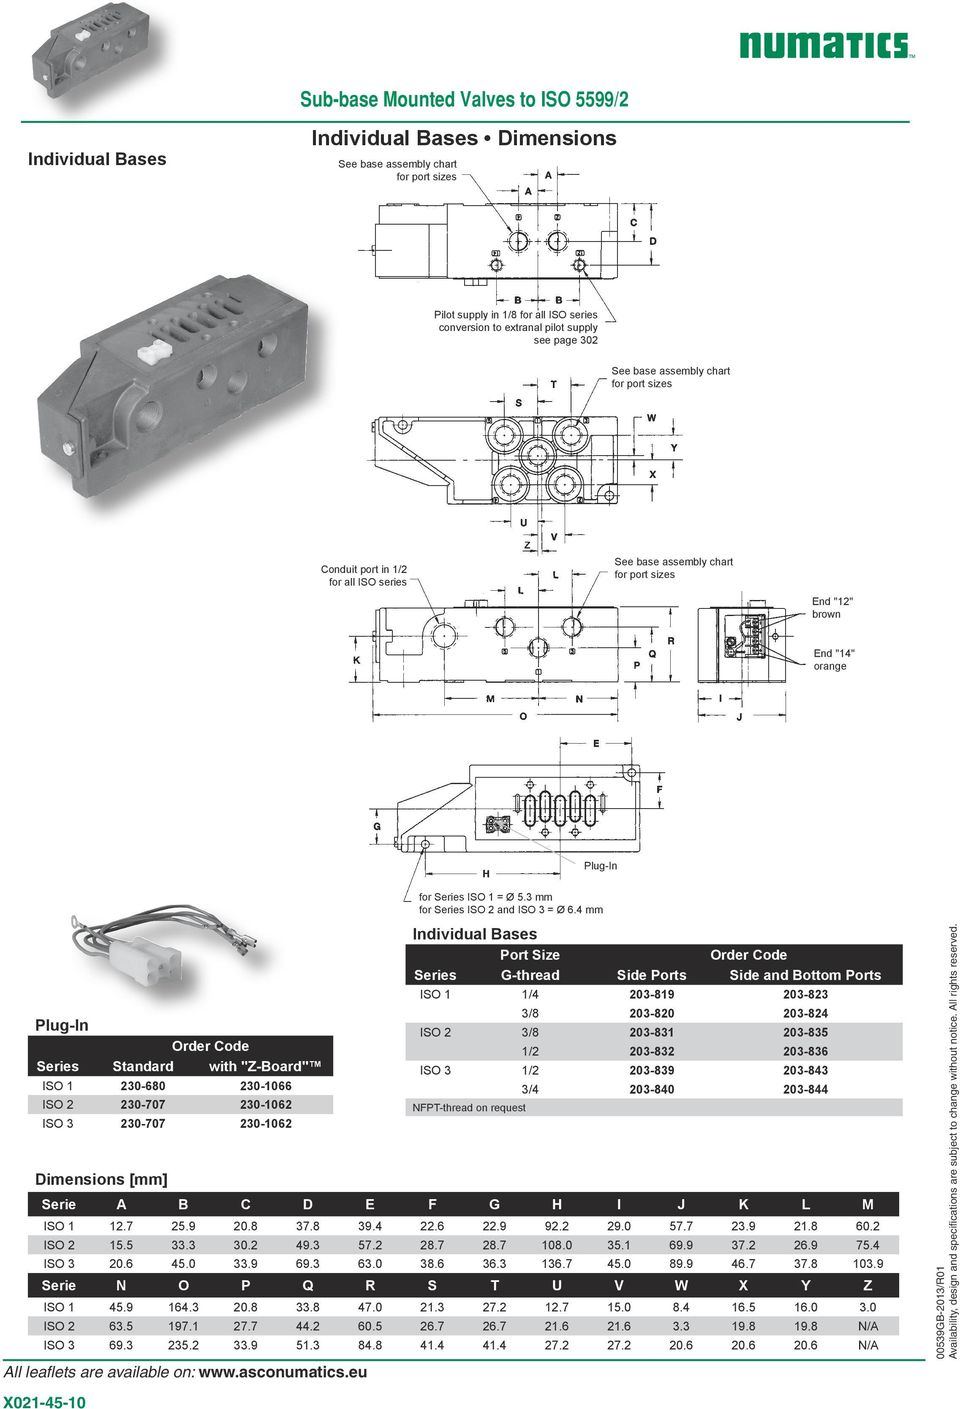 "4 mm Plug-In Series Standard with ""Z-Board"" ISO 1 230-680 230-1066 ISO 2 230-707 230-1062 ISO 3 230-707 230-1062 Dimensions [mm] Individual Bases Port Size Series G-thread Side Ports Side and Bottom"